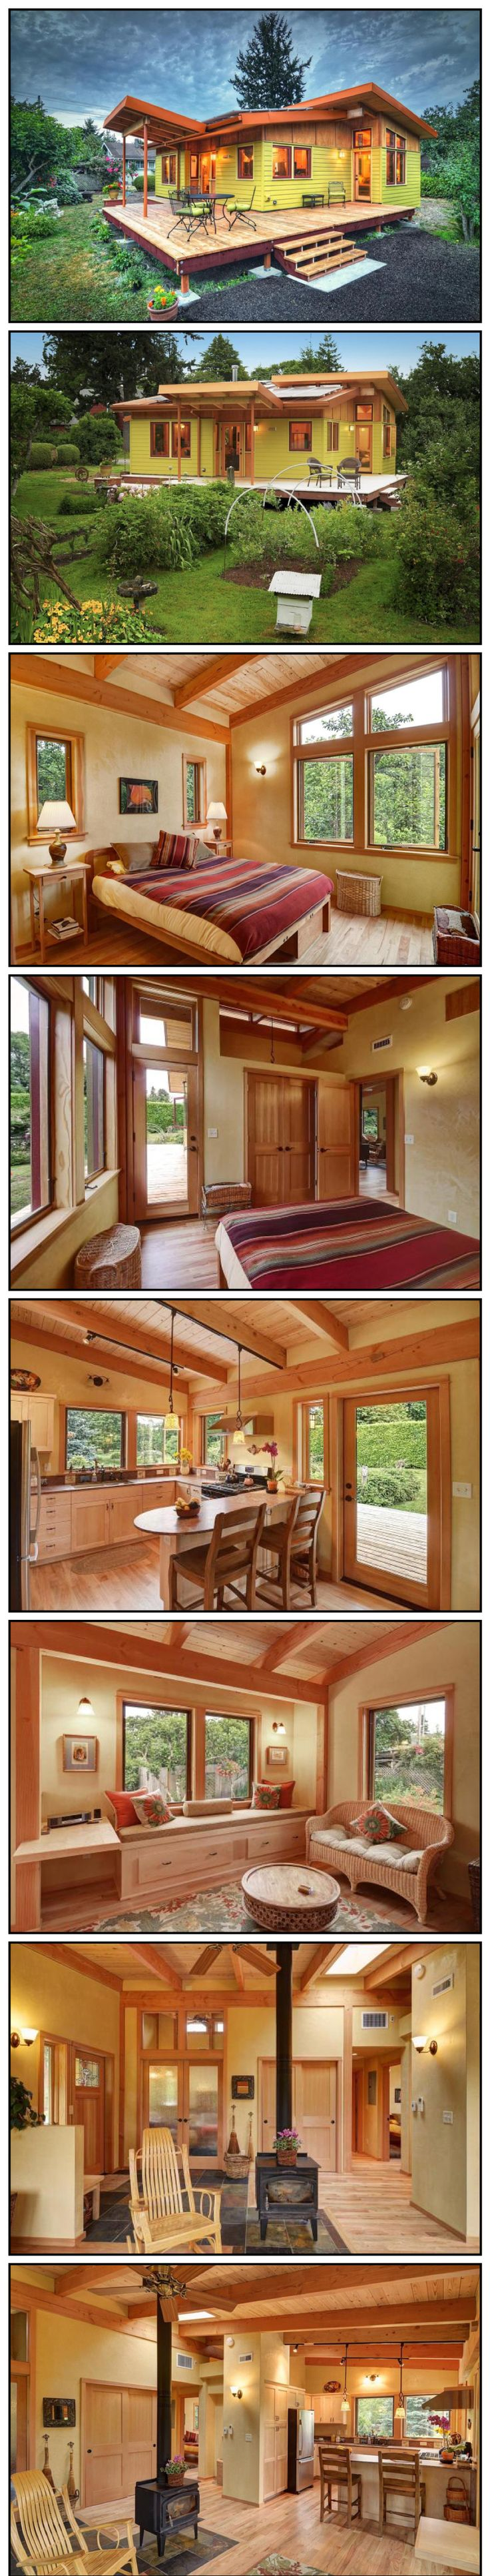 Every Tiny House Needs a Porch (and roof deck)